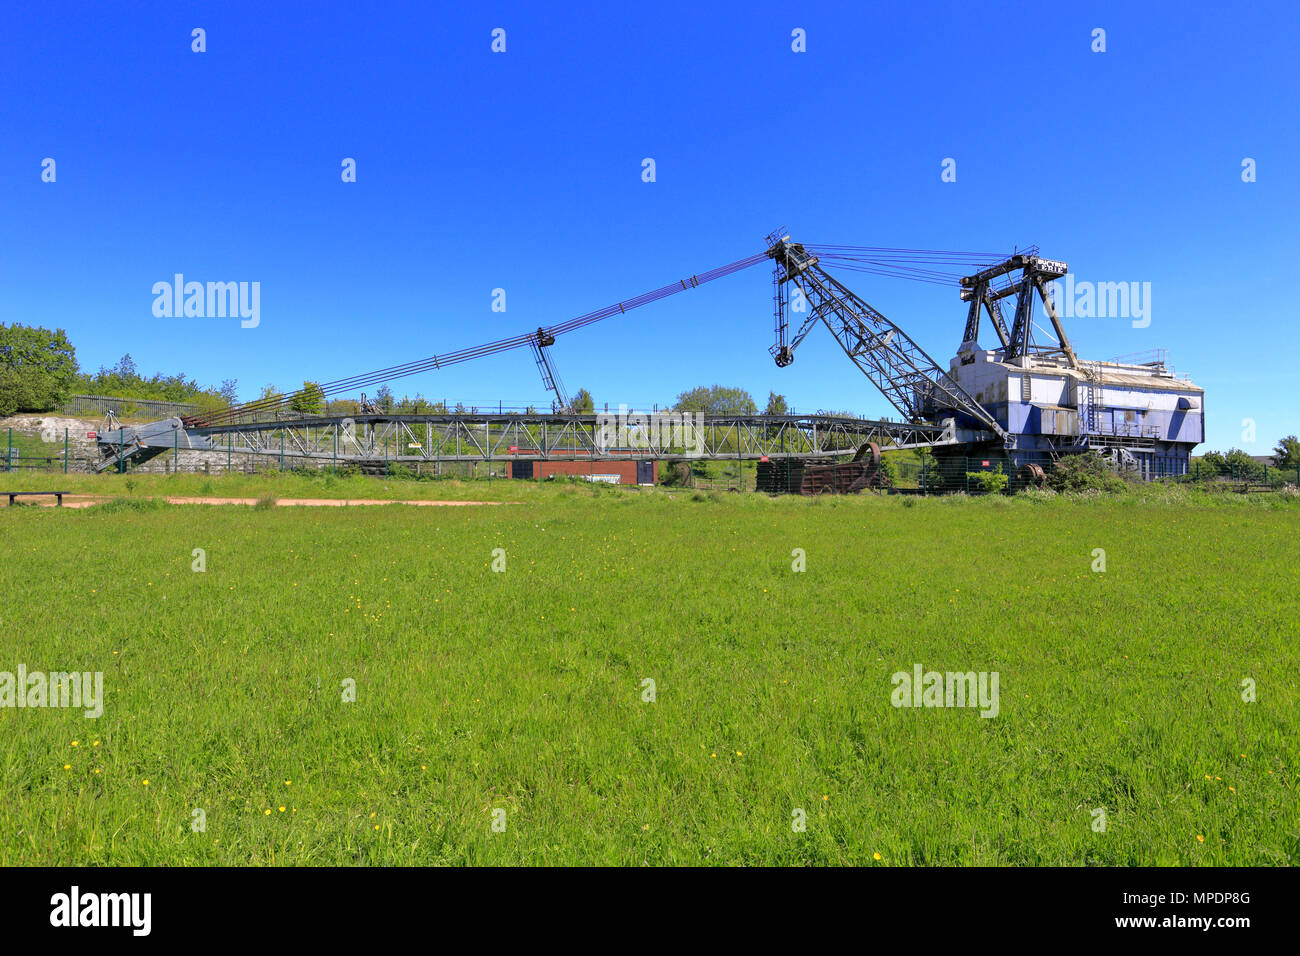 Bucyrus Erie BE 1150 Walking Dragline Excavator, known as Oddball at RSPB reserve St Aidan's near Leeds, West Yorkshire, England, UK. Stock Photo